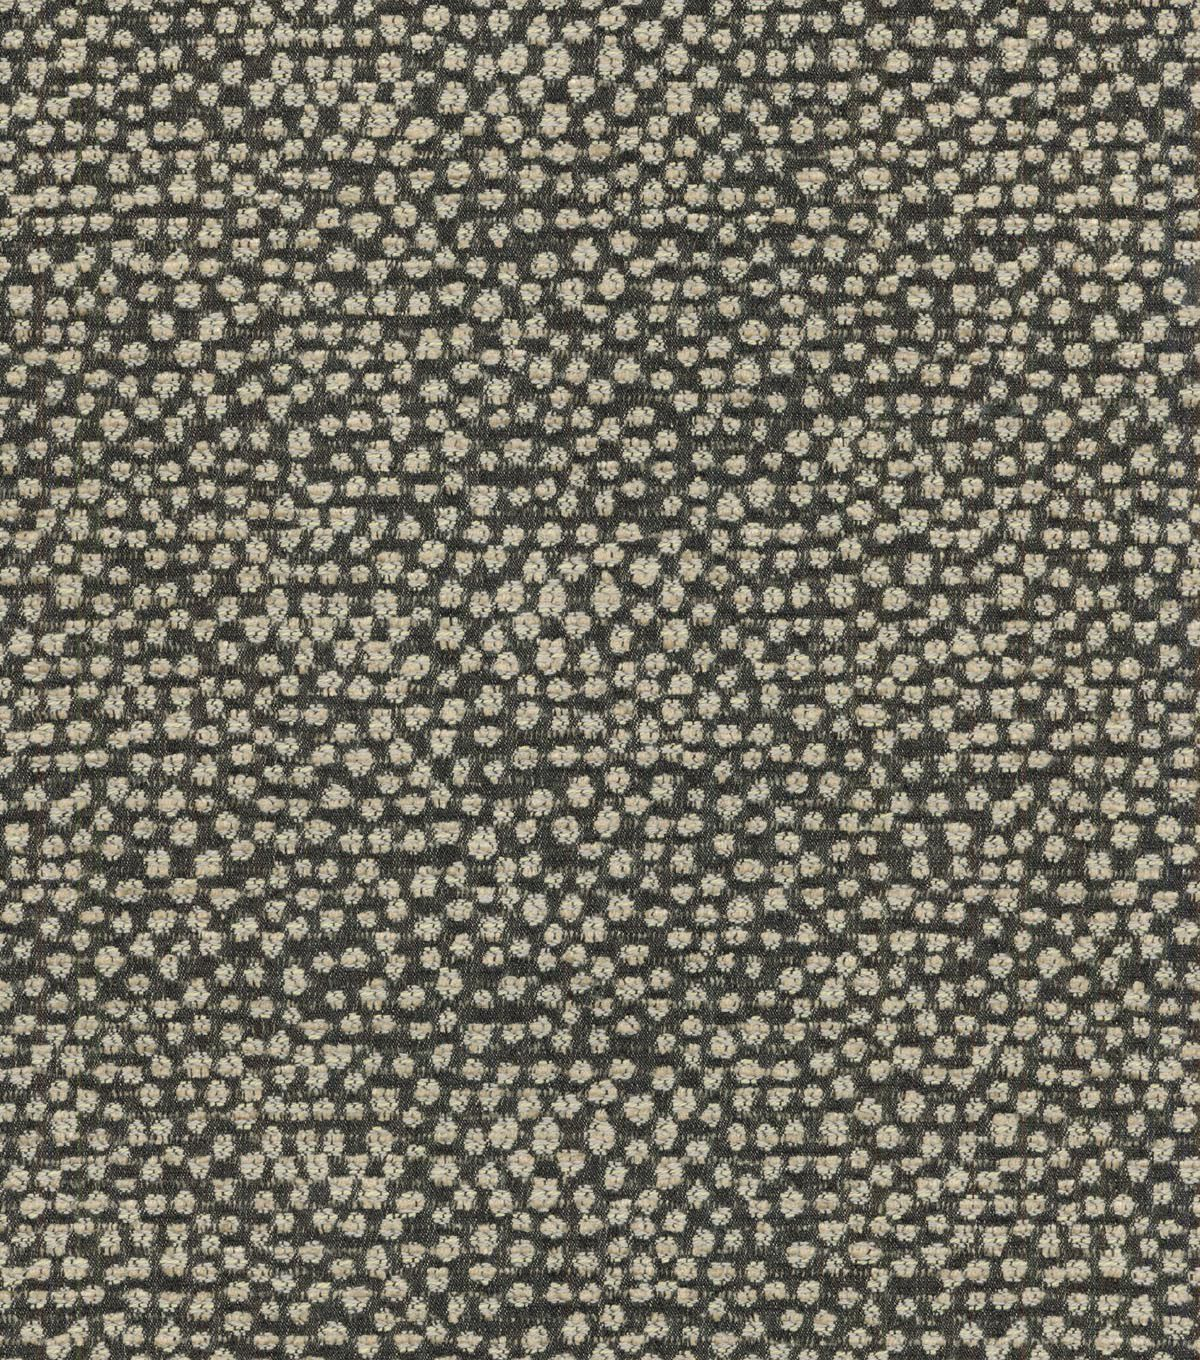 Waverly Upholstery Fabric 55 Pebble Nightfall Joann Fabric Decor Home Decor Fabric Upholstery Fabric